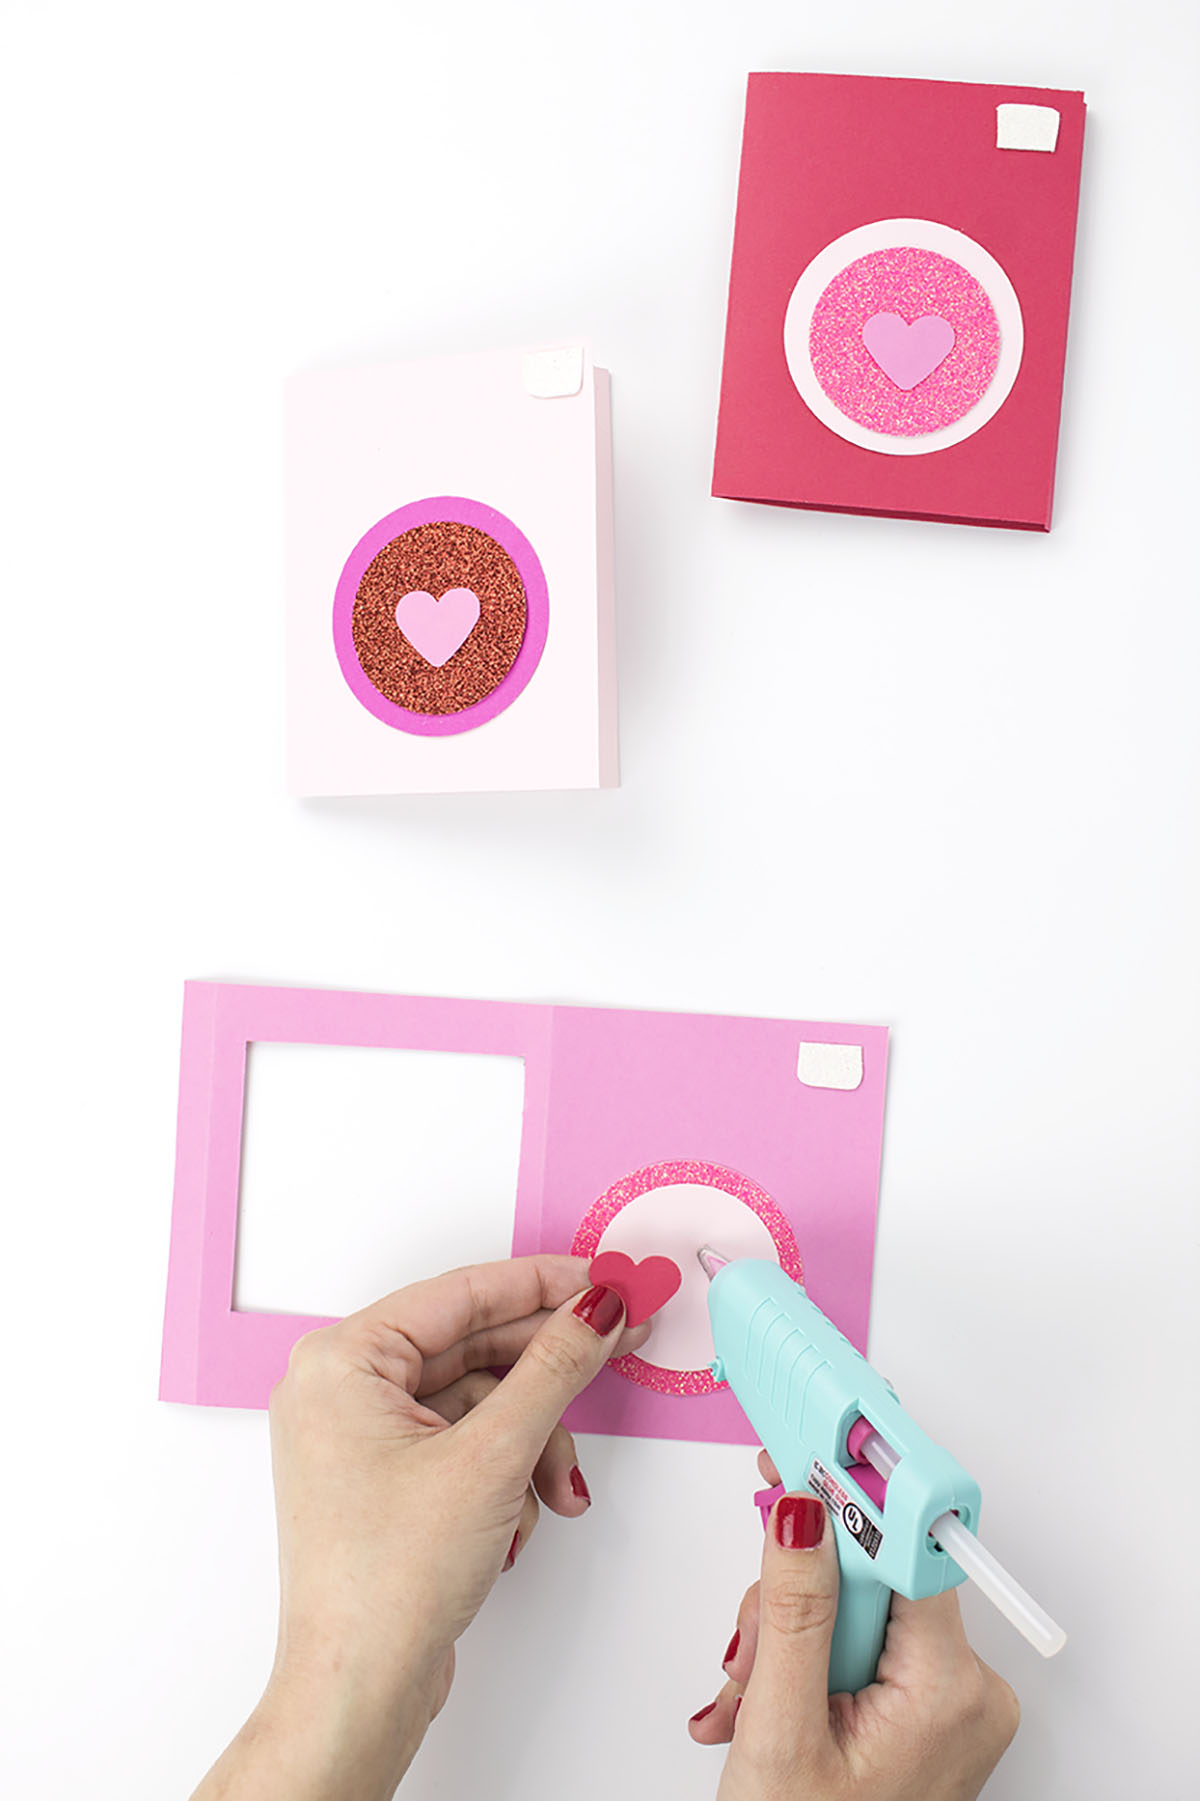 Valentines-Day-Polaroid-Photo-Card-Glueing